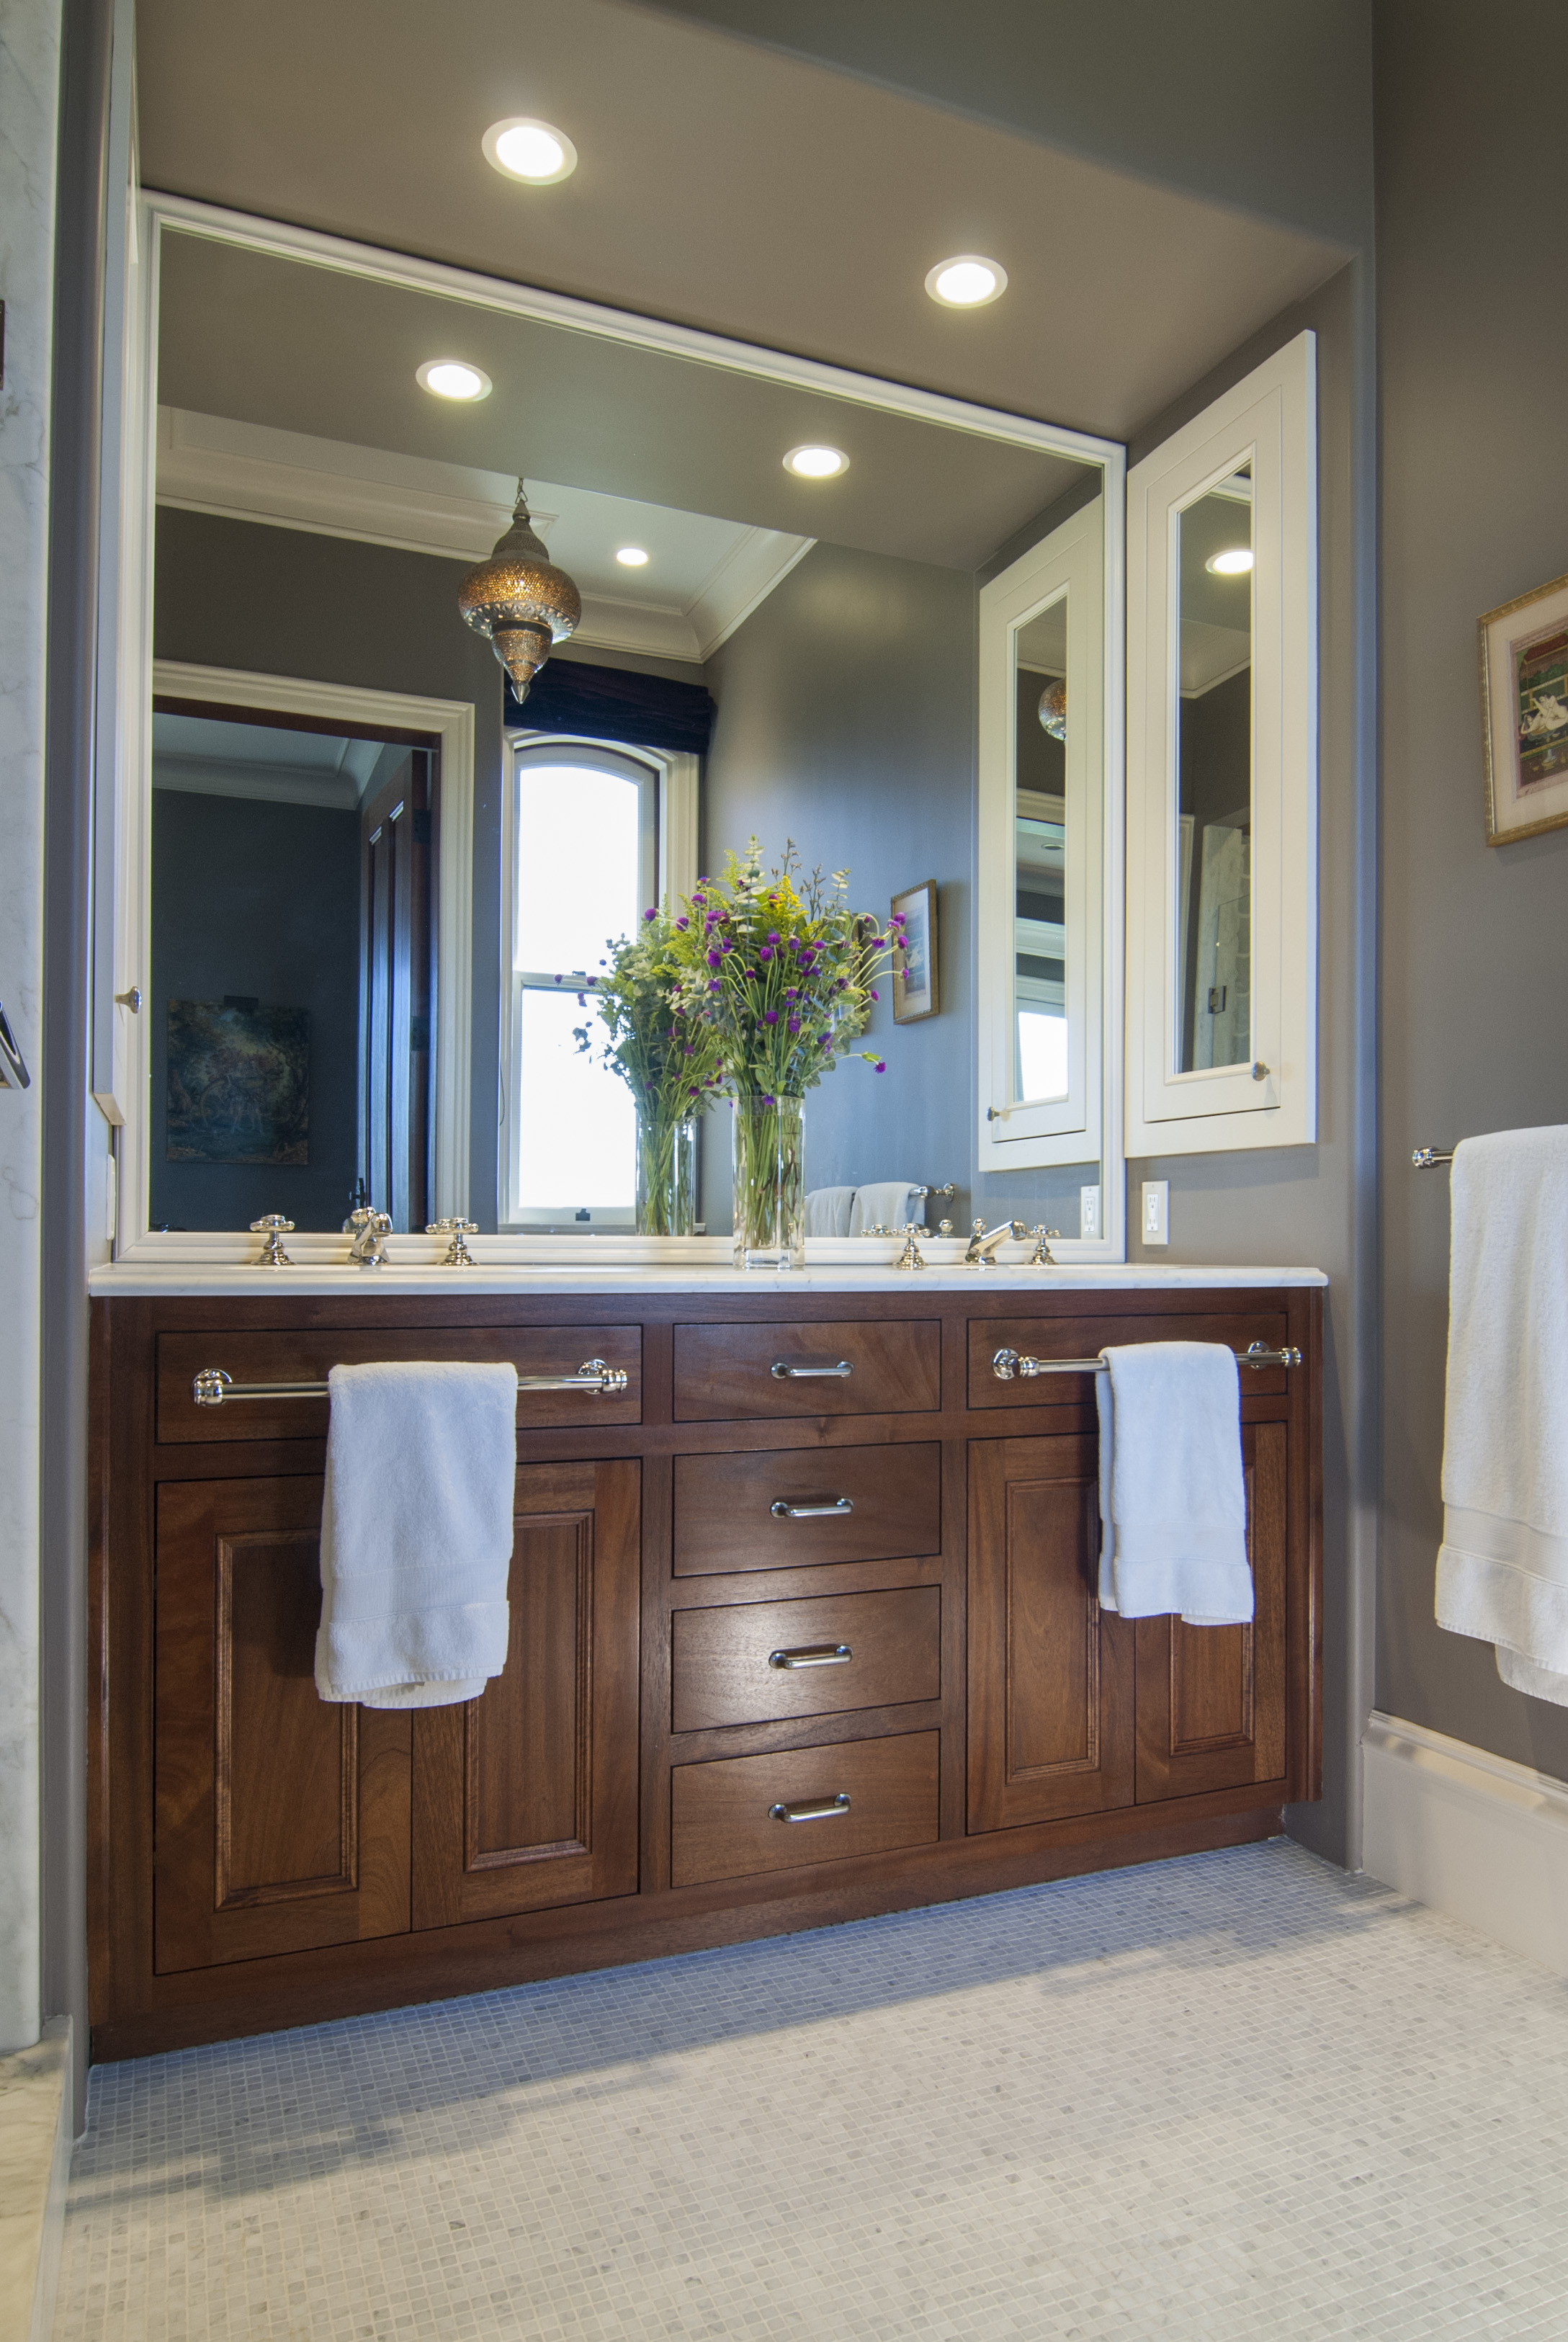 Transitional Master Bathroom Vanity with Double Sinks, White Counter Top, Silver Faucets and Pulls